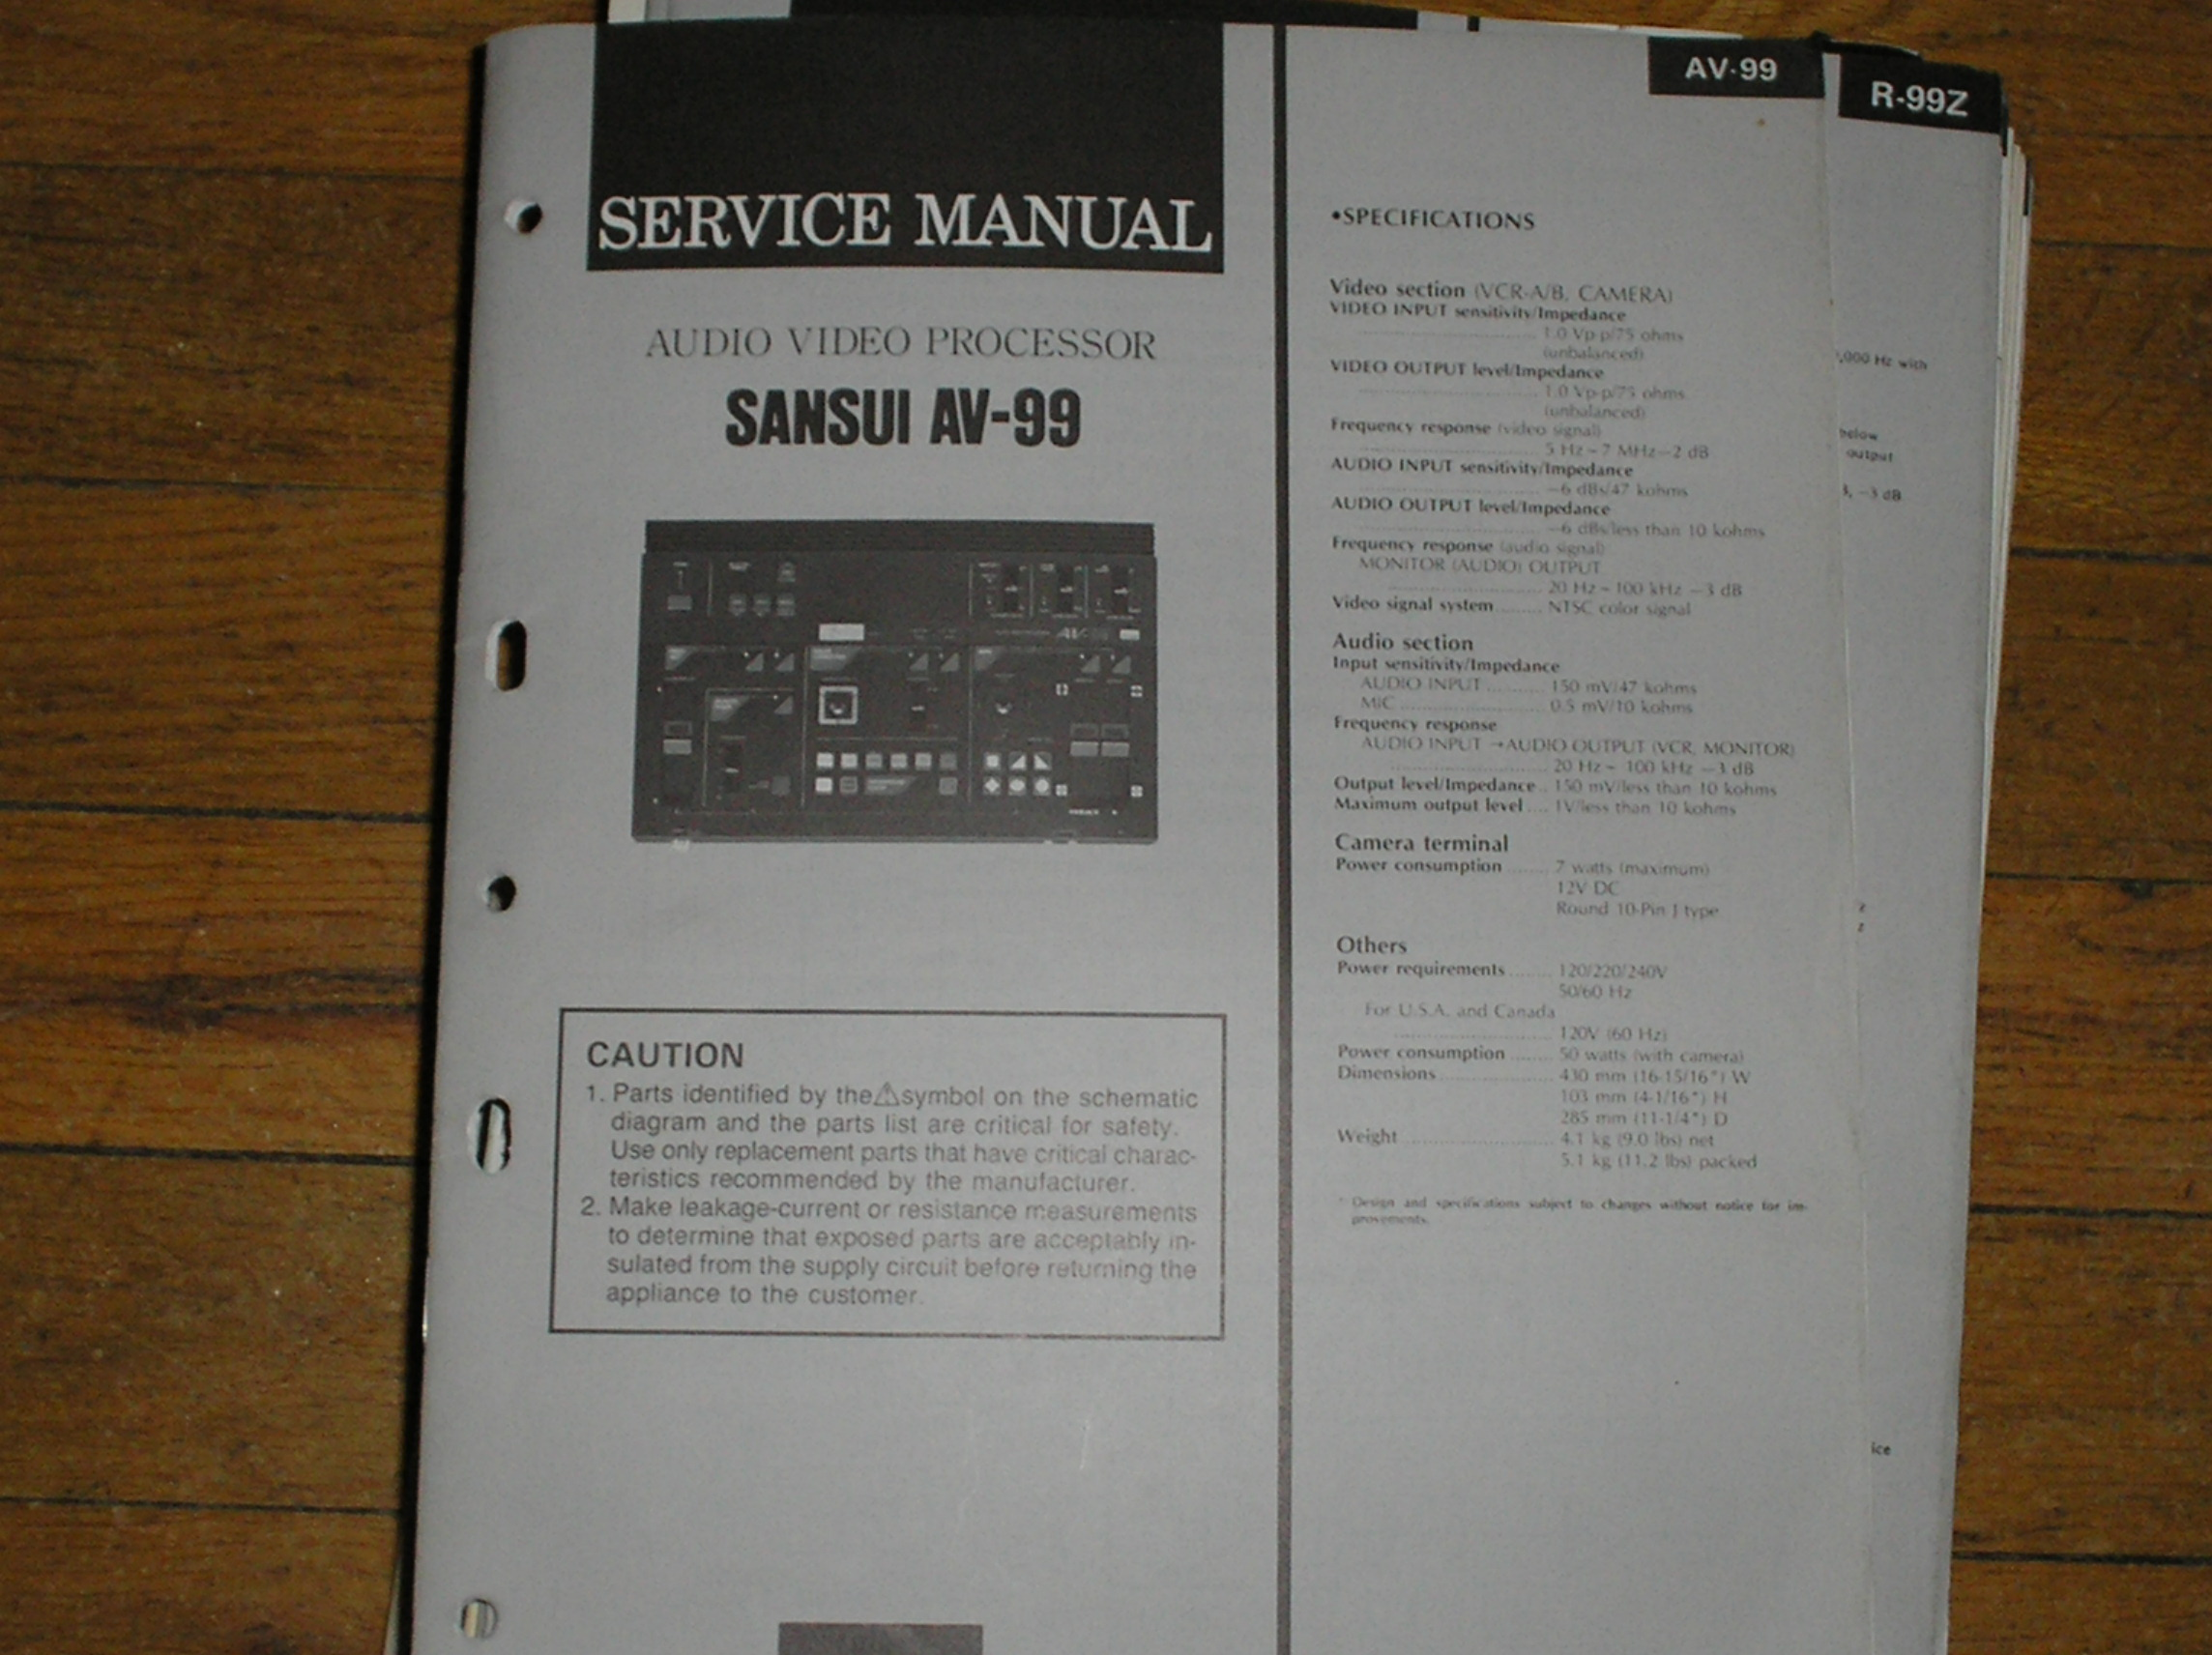 AV-99 Audio Video Processor Service Manual